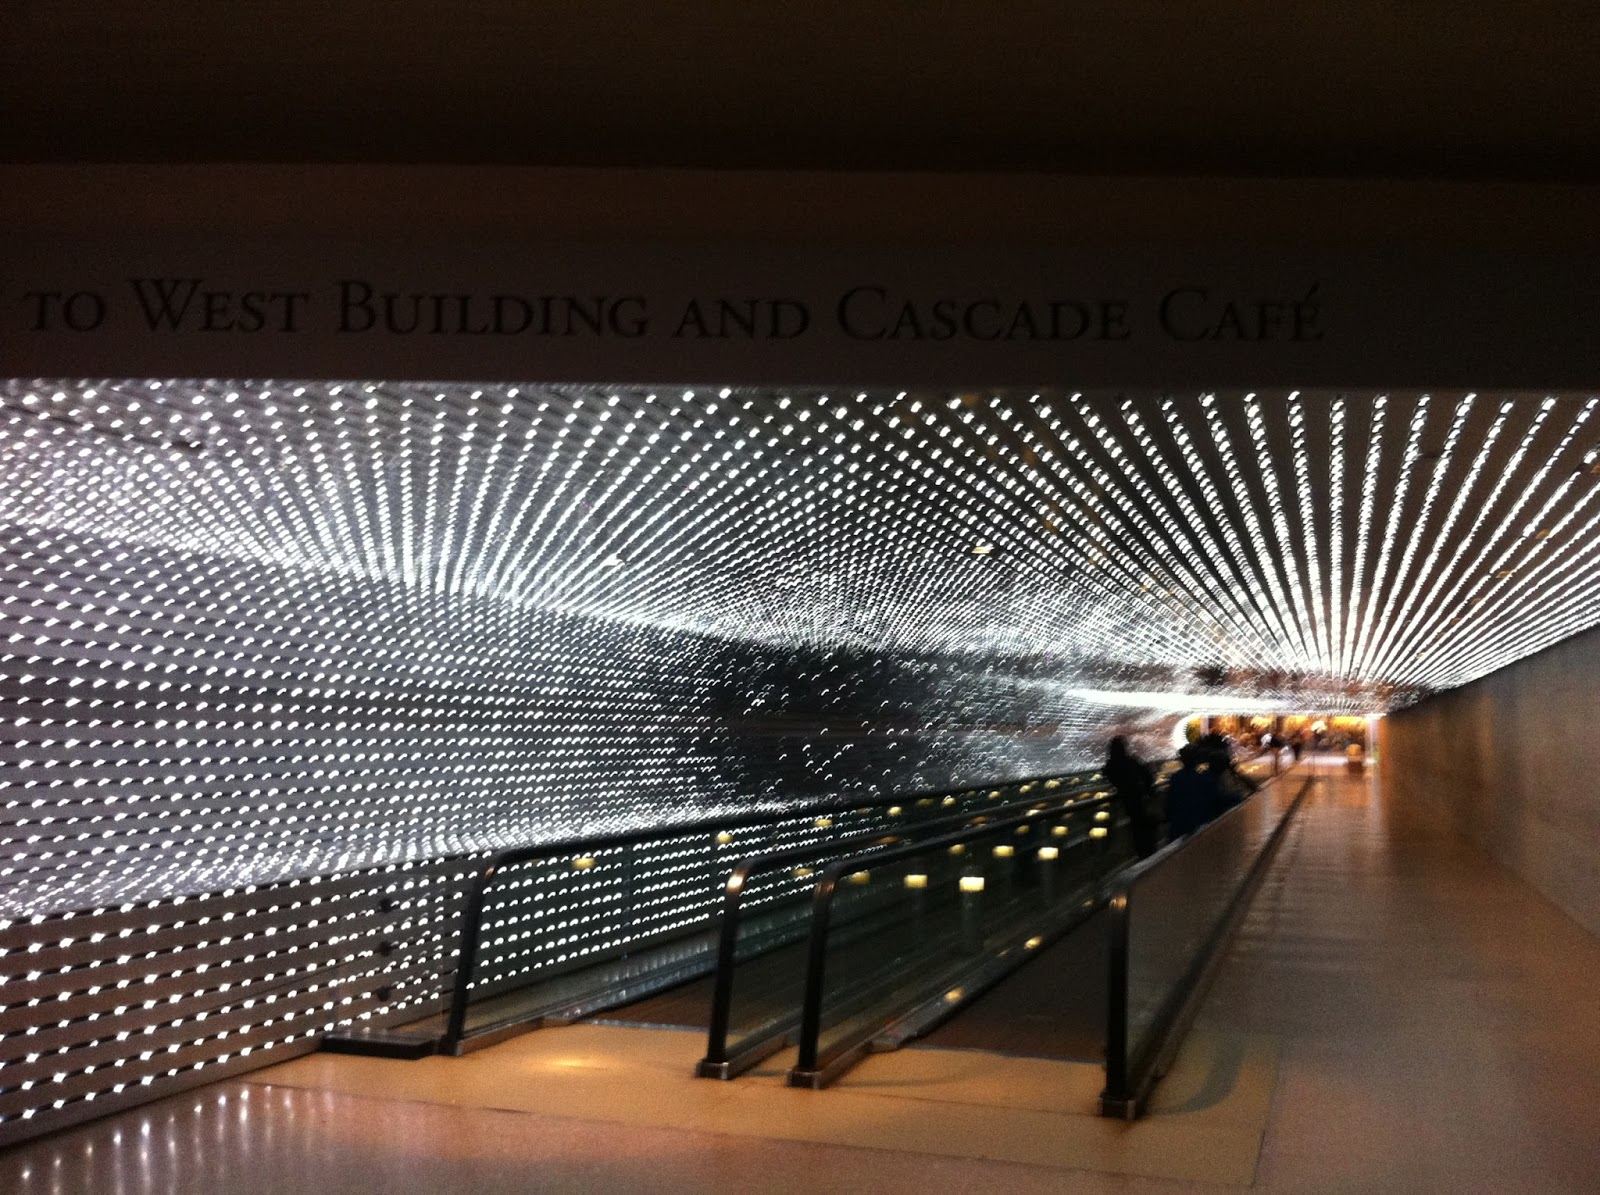 Artpup led lights along the ceiling and one wall of the walkway are programmed to create abstract configurations of light it creates an immersive experience in an aloadofball Image collections